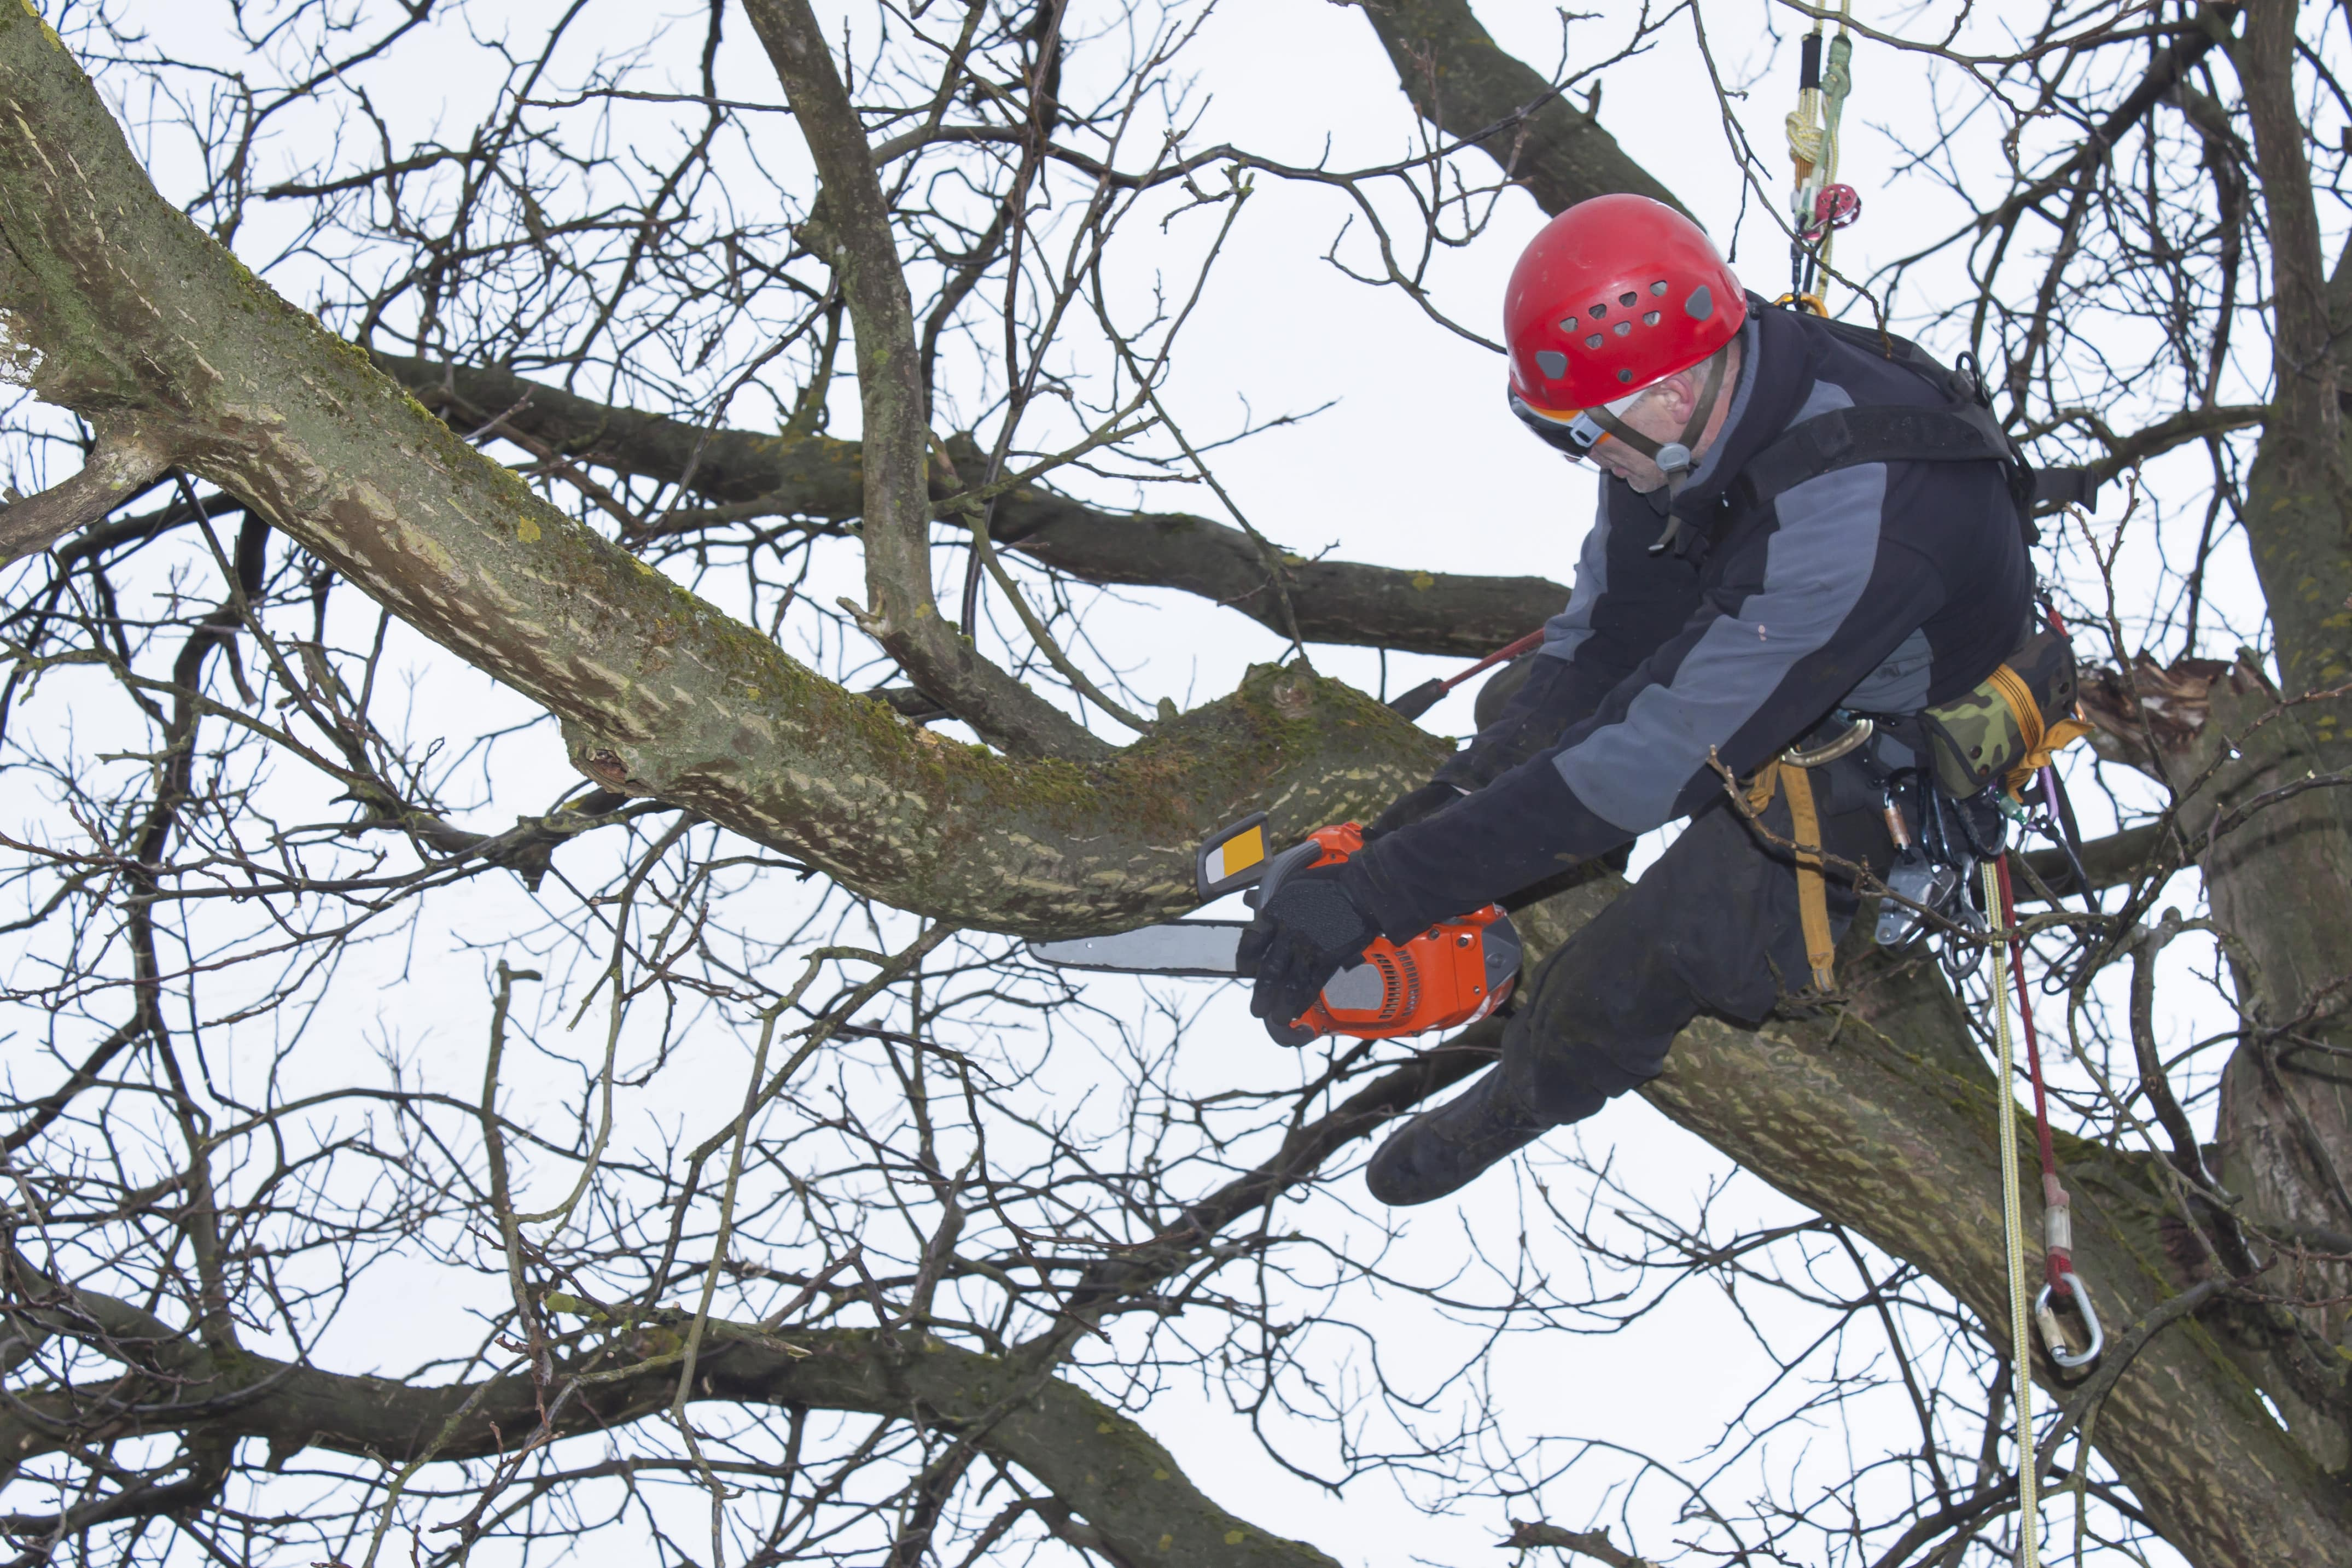 Tree Service Pro Cutting Tree Branch in Downtown Attleboro, MA